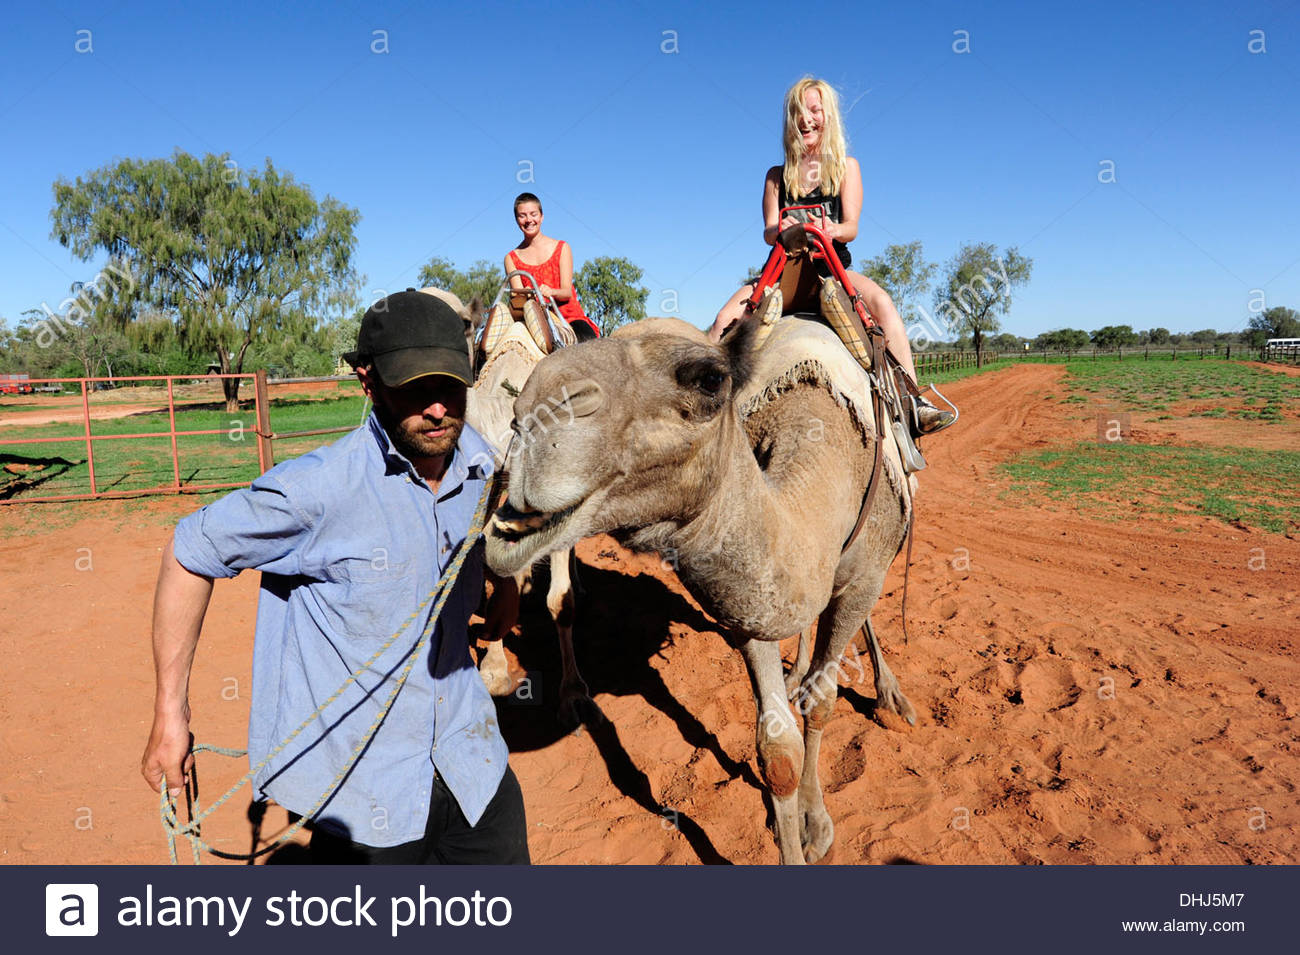 Tourists riding on camels, camel farm, Alice Springs, Outback, Northern Territory, NT, Australia - Stock Image